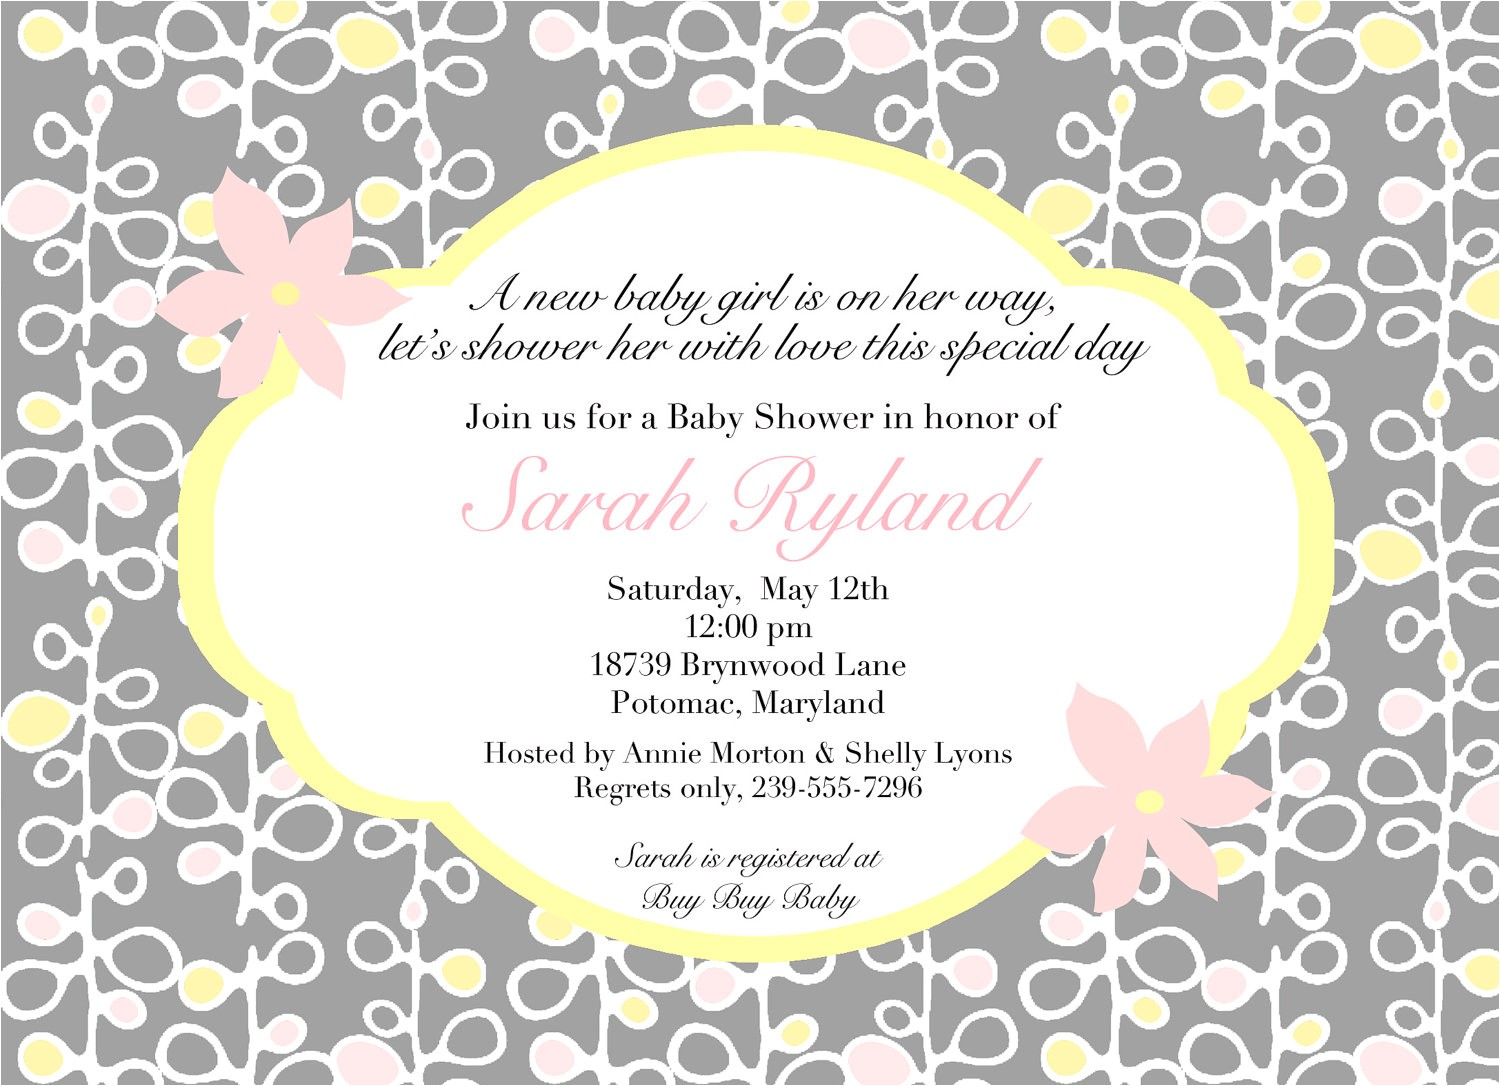 Baby Shower Invites Wording Wording for Baby Shower Invitations asking for Gift Cards